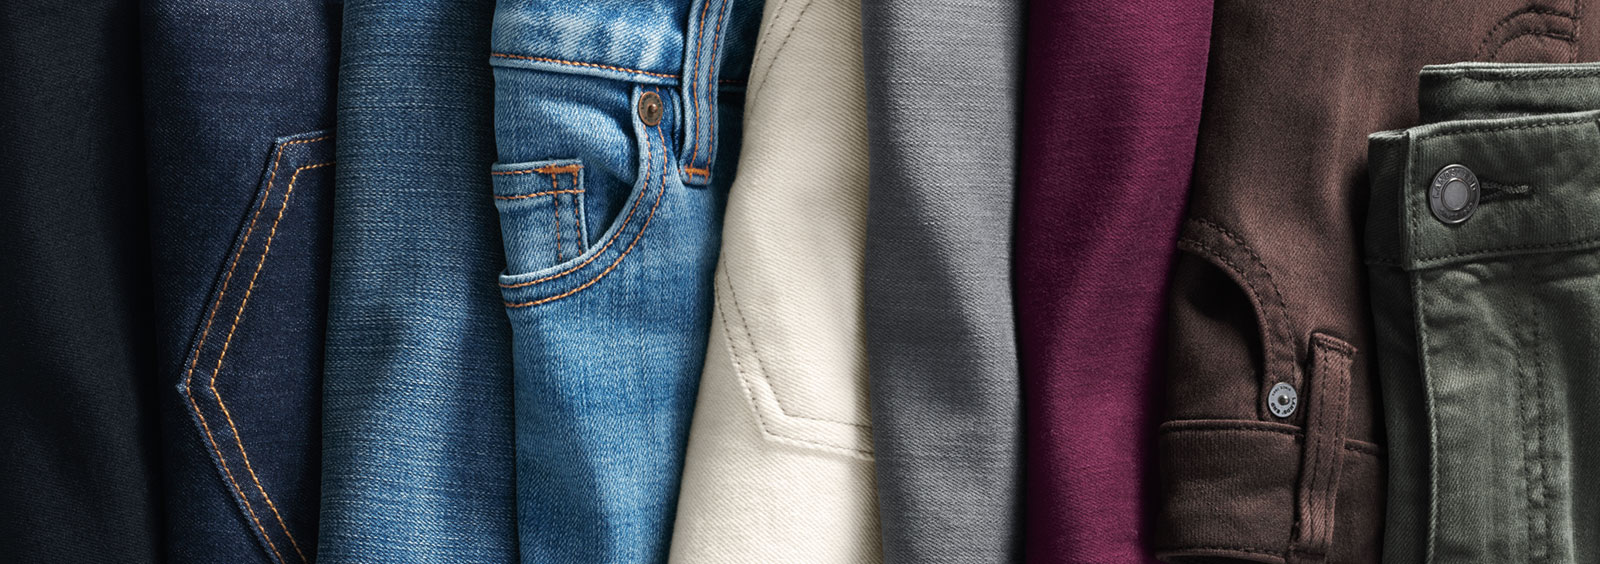 Best Jeans for Where You're Heading